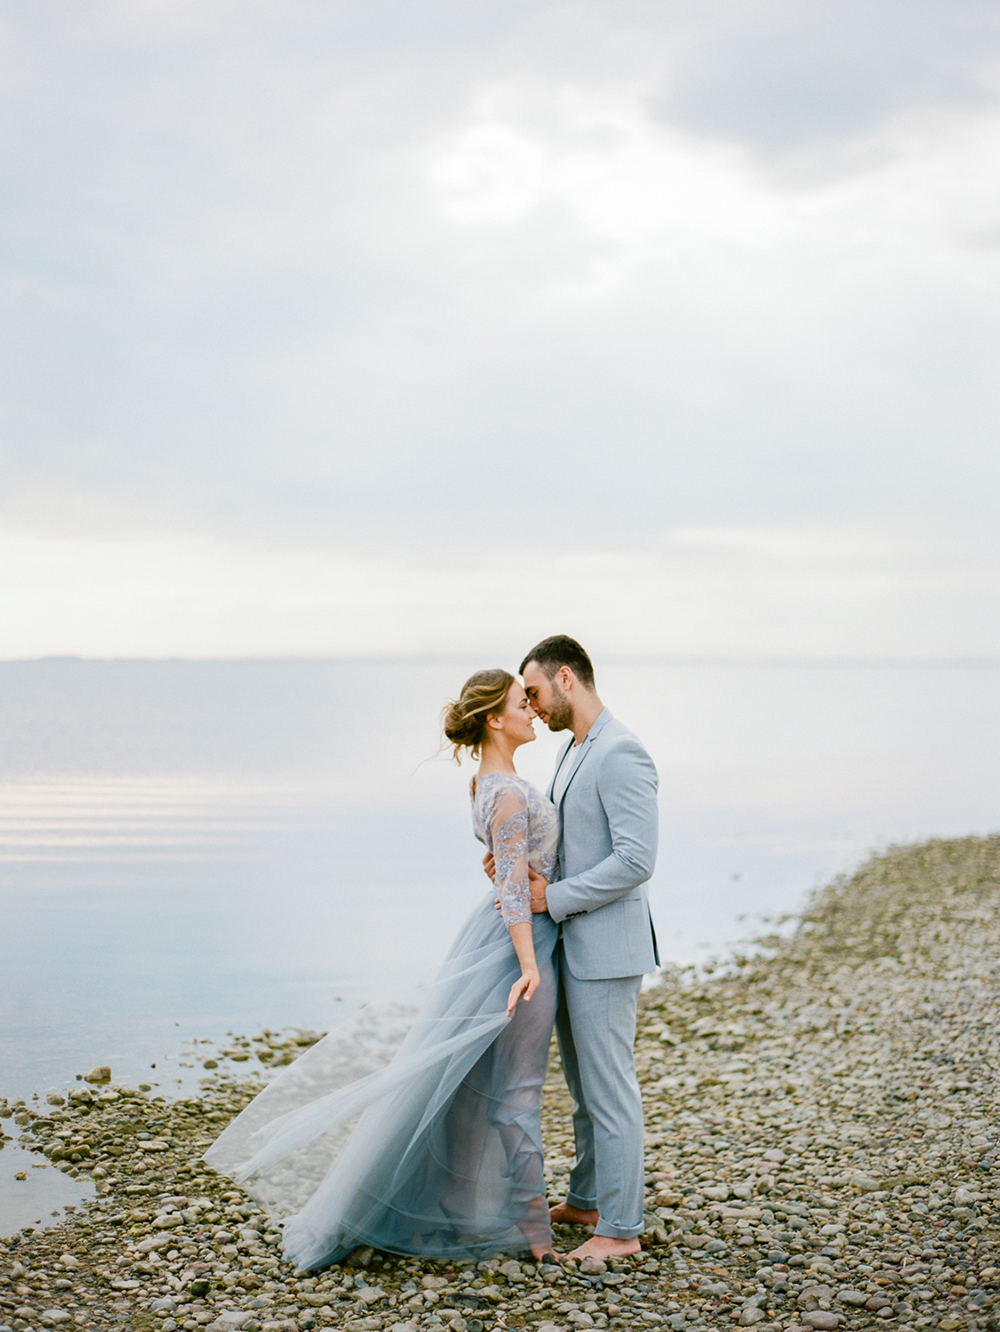 wedding photography - photo by Muravnik Photography http://ruffledblog.com/calming-baltic-sea-wedding-inspiration